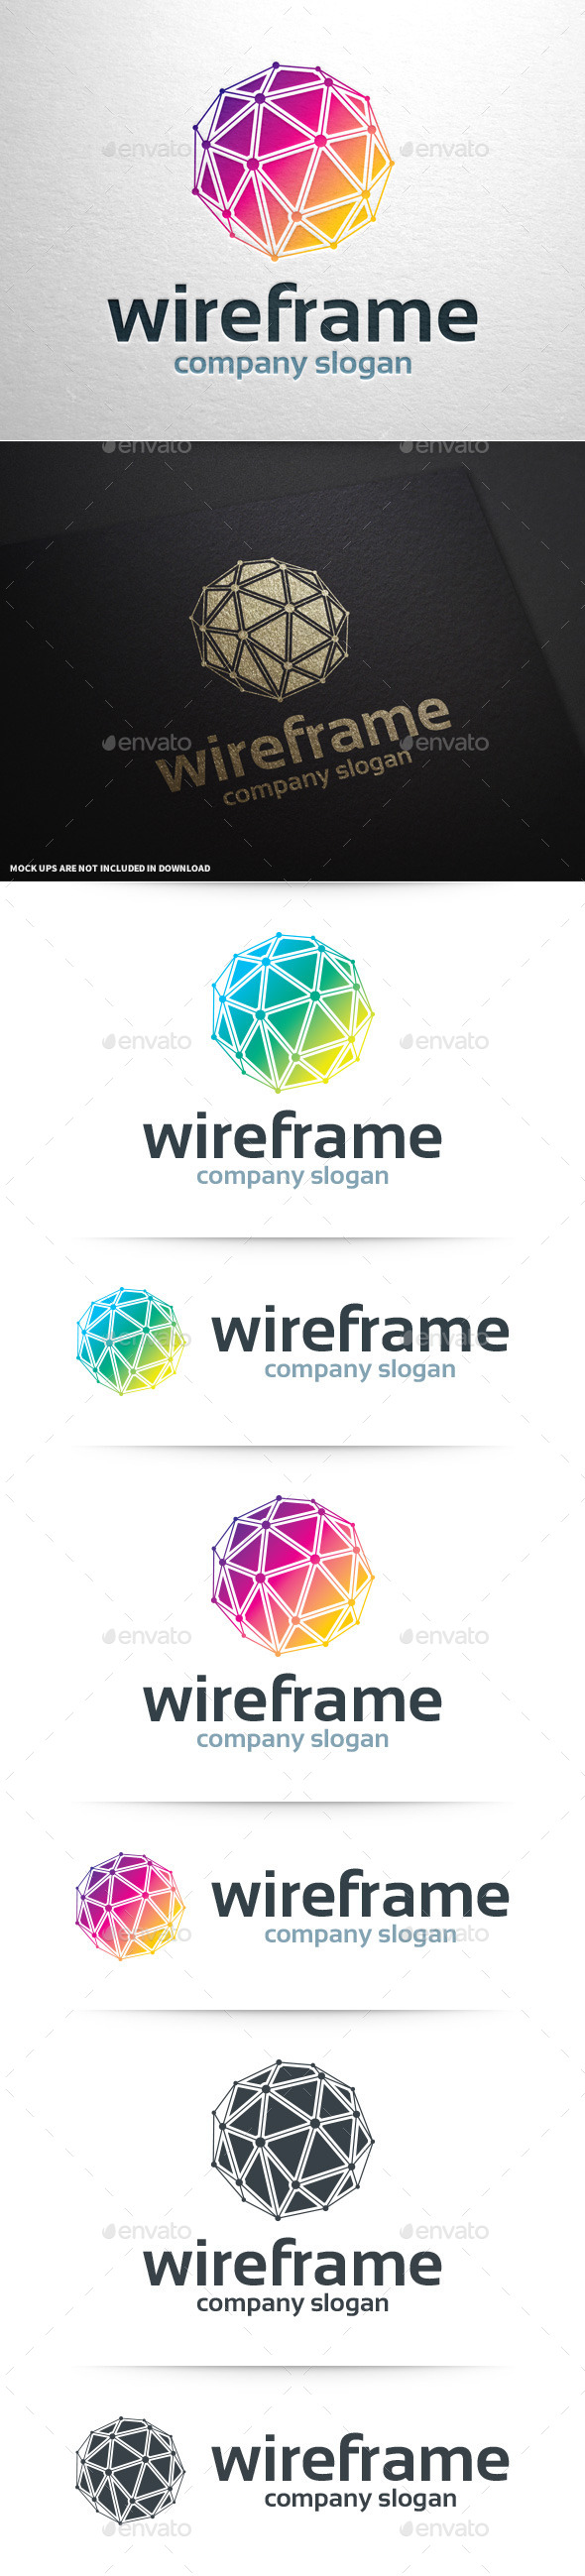 GraphicRiver Wireframe Logo Template 11097452